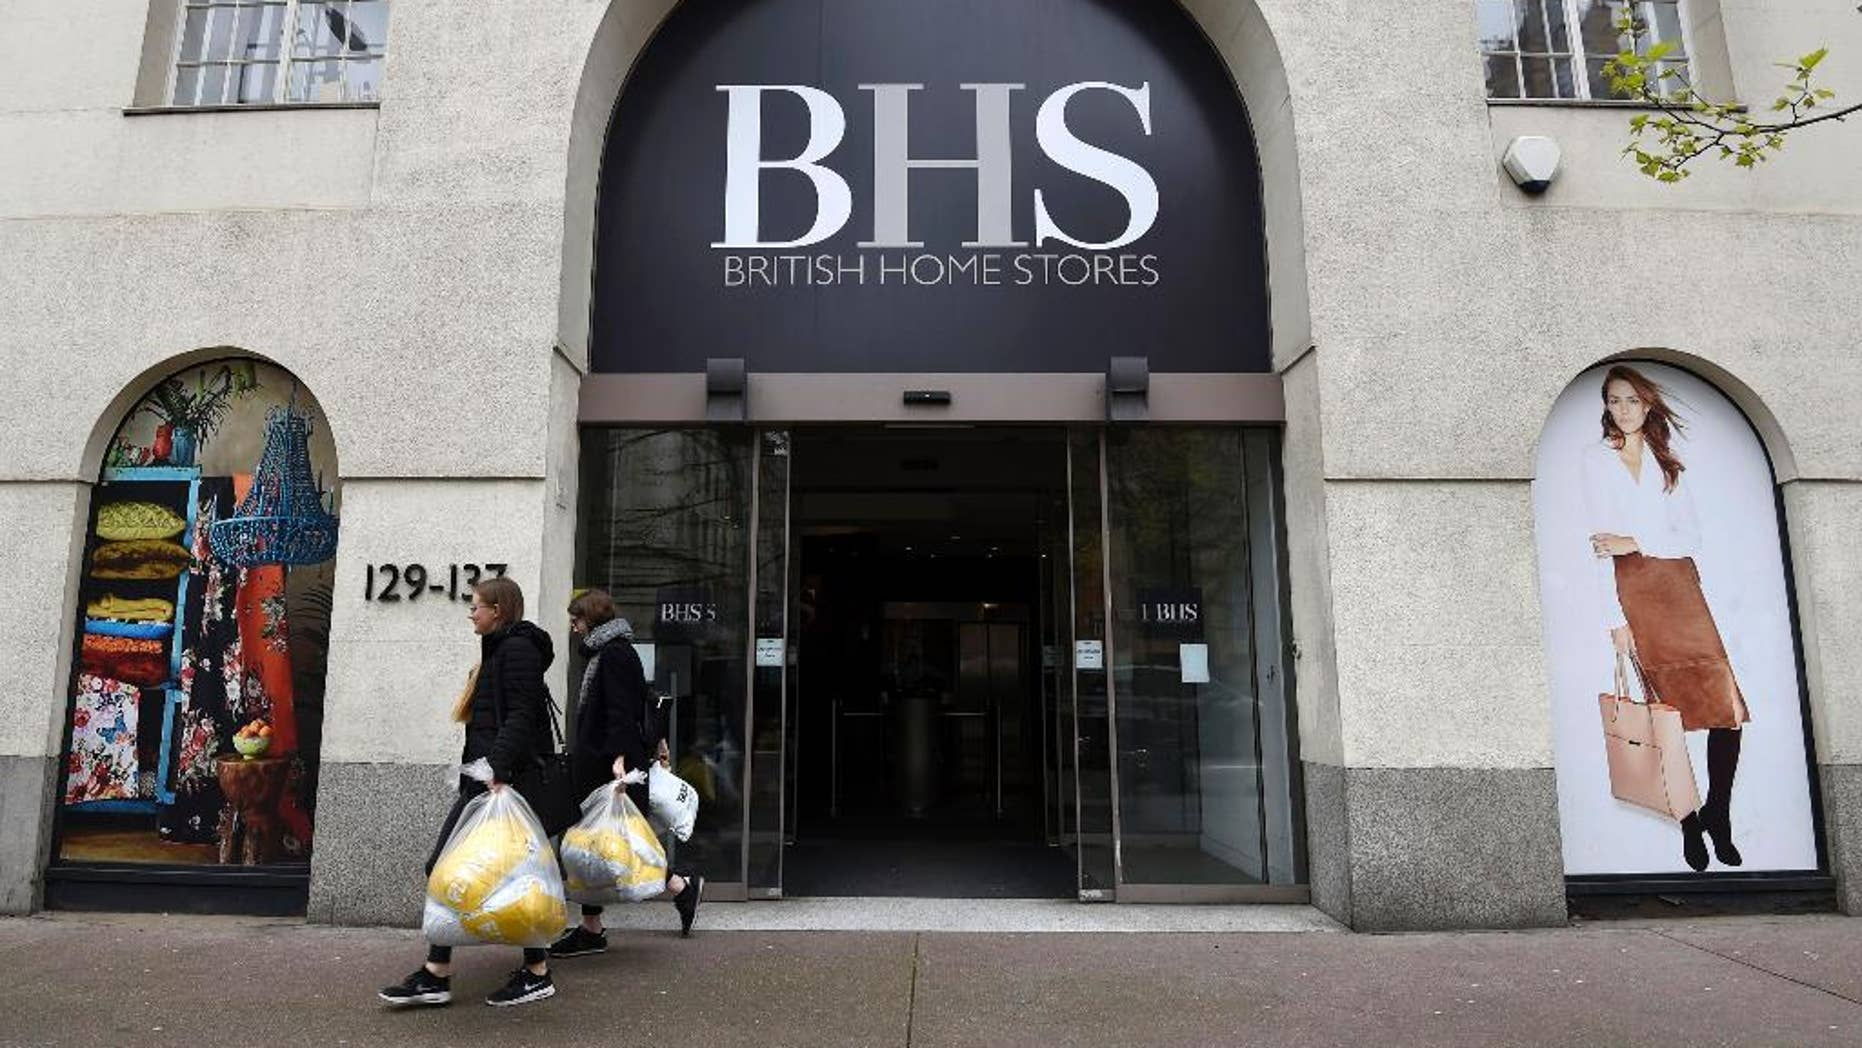 The headquarters of British Home Stores in Marylebone Road, London, Monday April 25, 2016. The troubled British department store chain BHS has called in administrators after failing to secure a rescue package, putting 11,000 jobs are at risk. A fixture on Britain's high streets, the firm has suffered from a chronic lack of investment recently. It has debts of more than 1.3 billion pounds ($1.8 billion), including a pension fund deficit of 571 million pounds. (Lauren Hurley/PA via AP) UNITED KINGDOM OUT